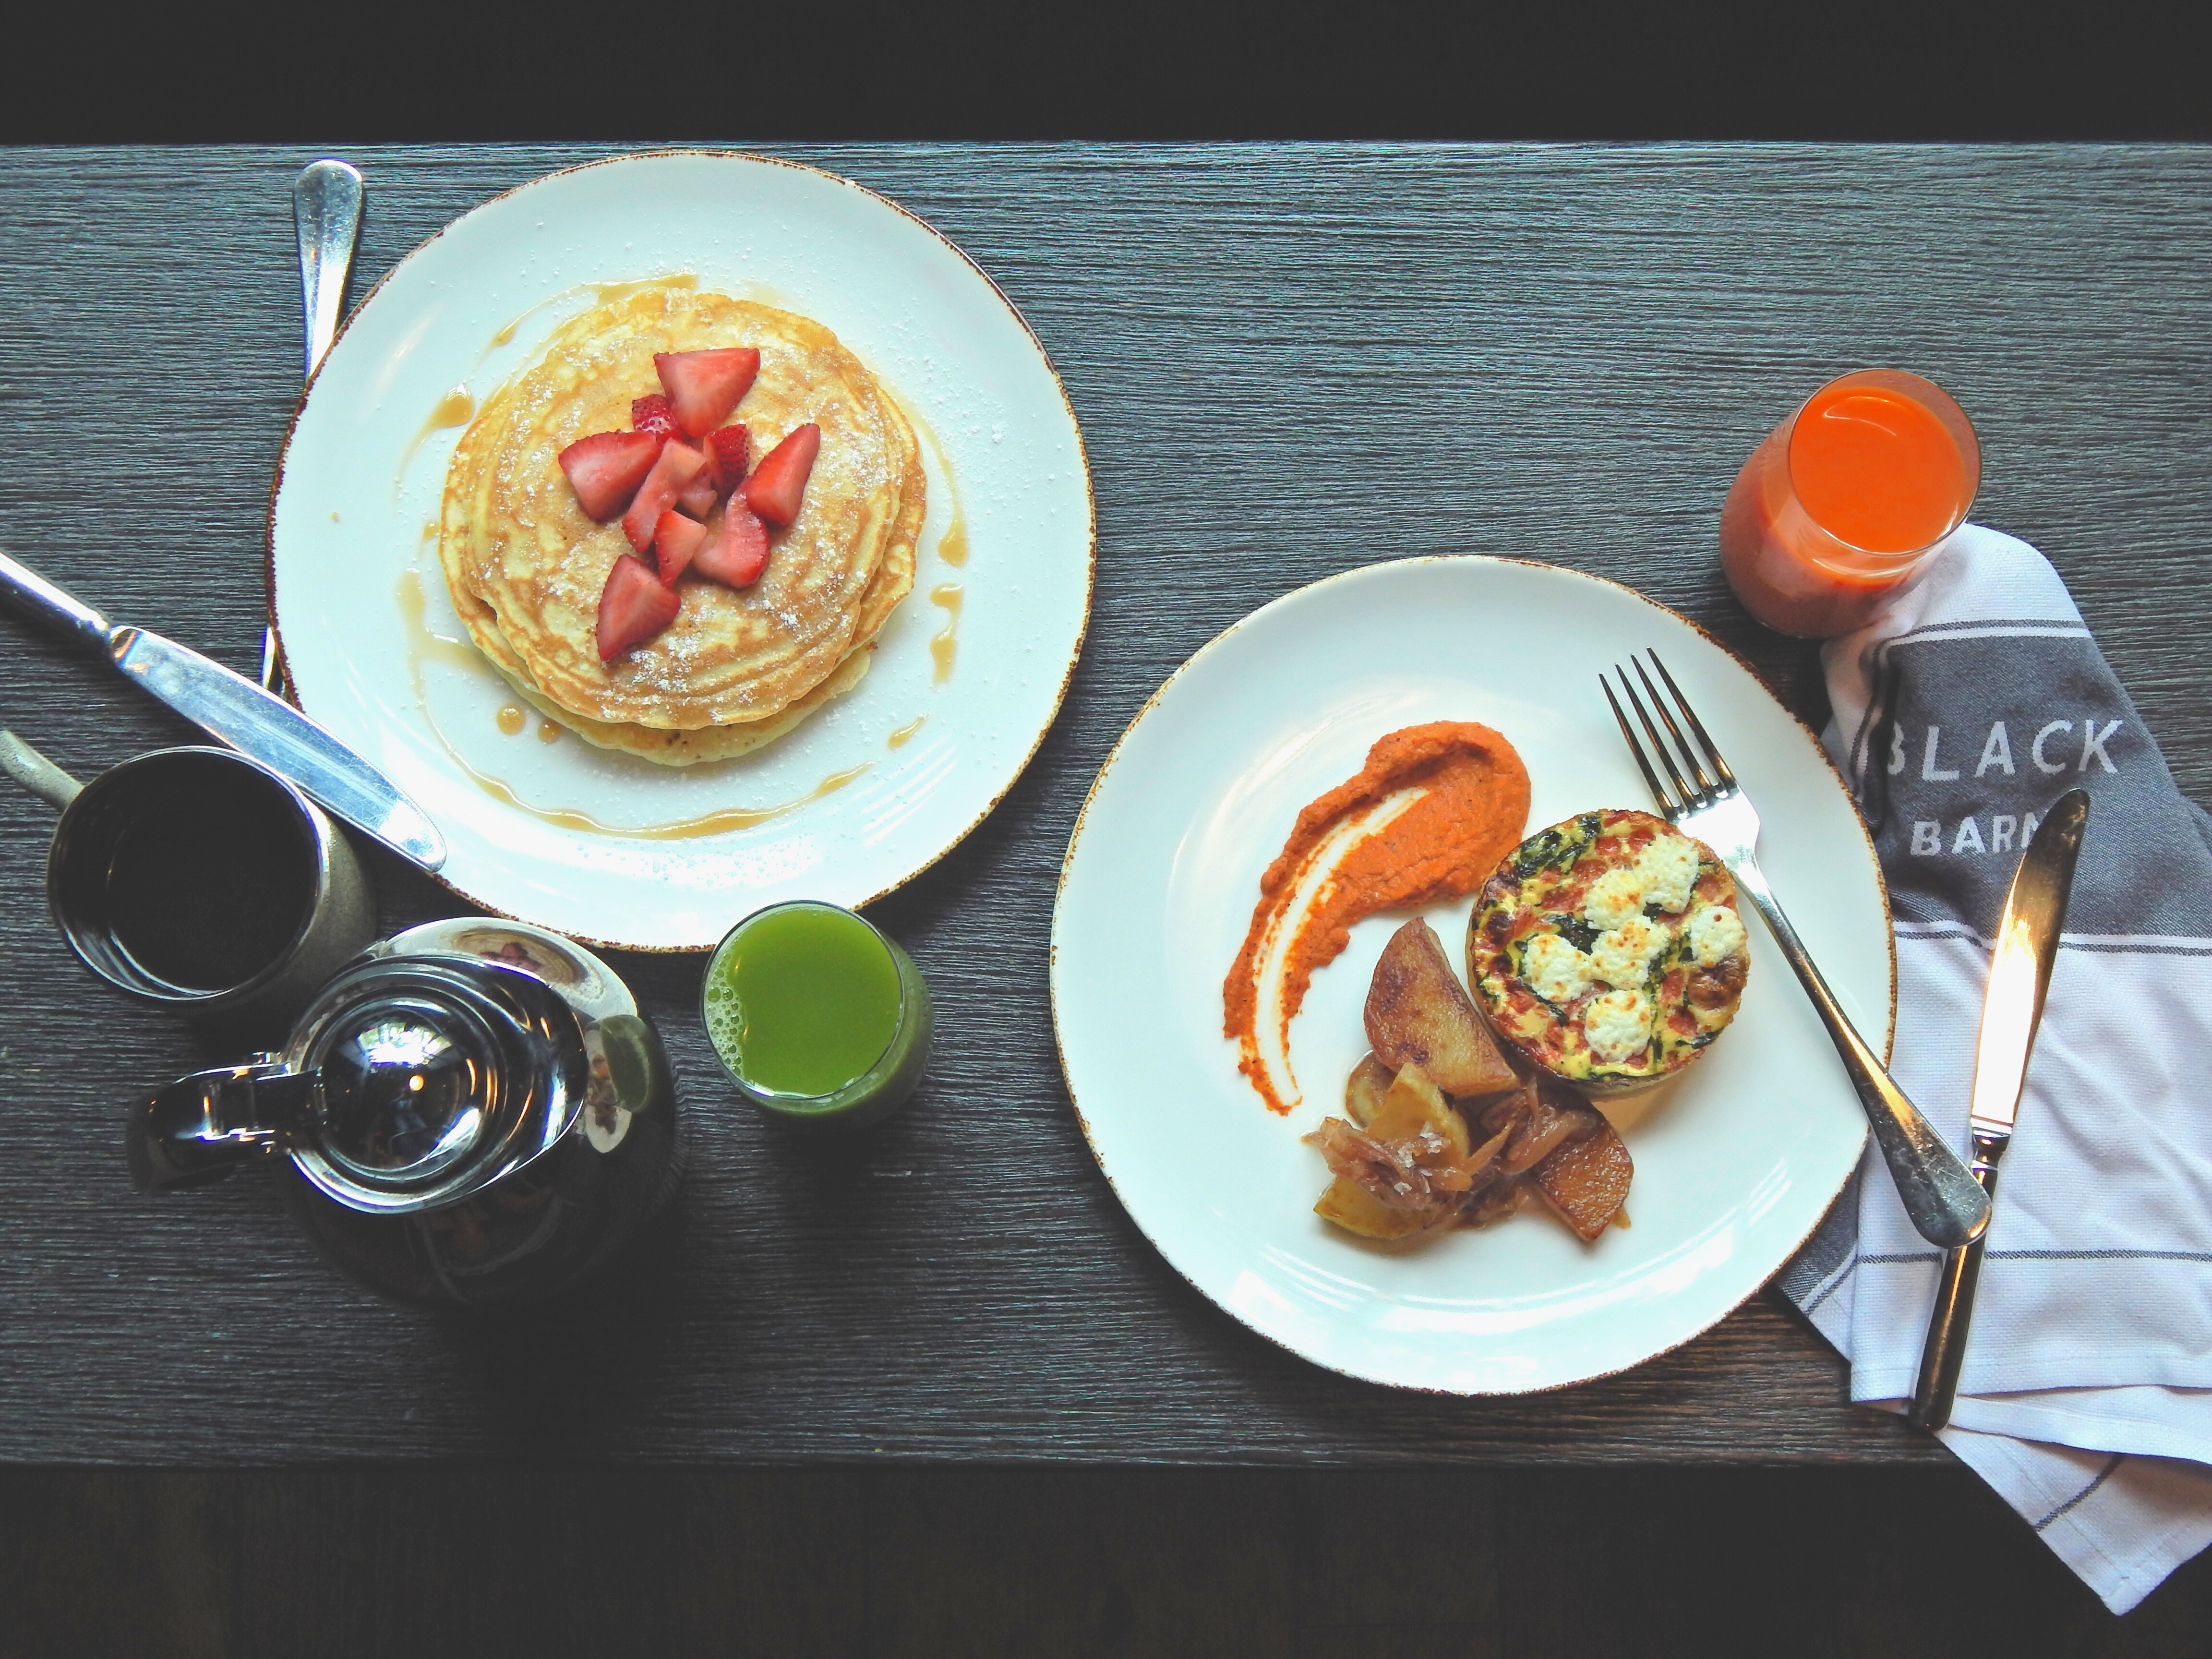 John Doherty's Black Barn launches breakfast and outdoor service